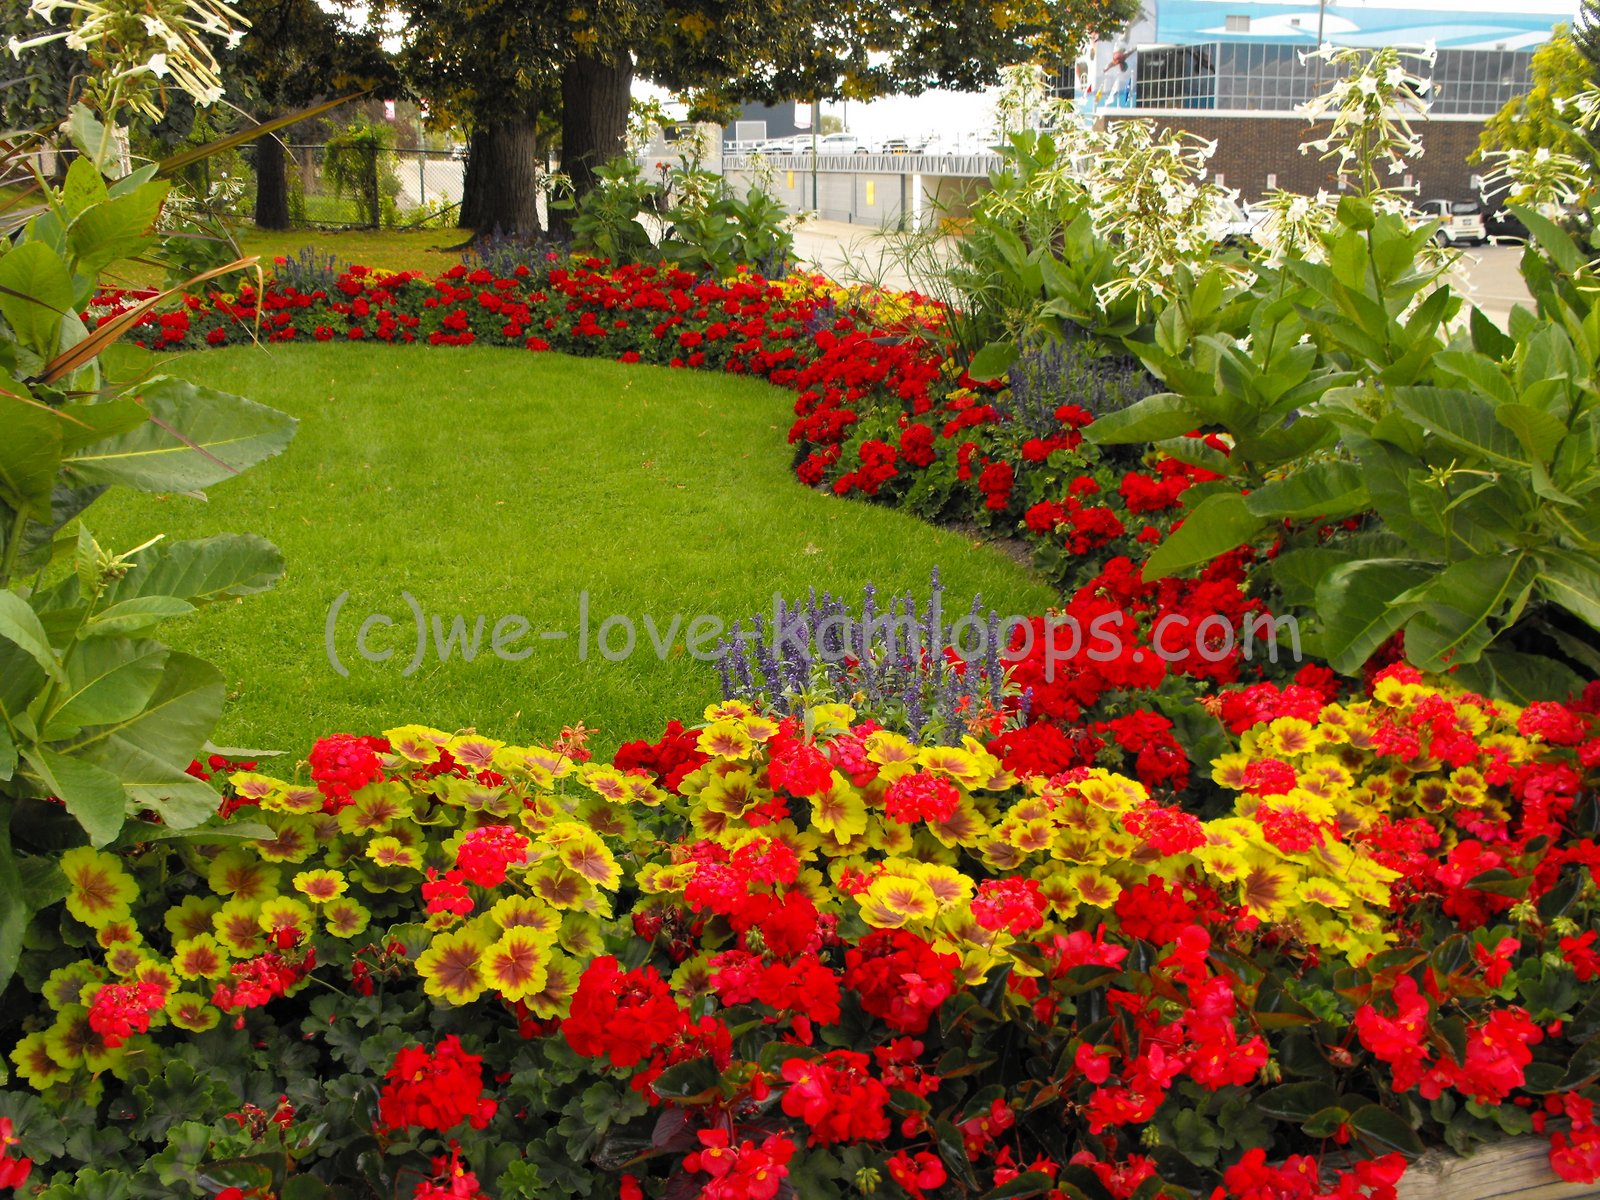 We love kamloops communities in bloom kamloops bc canada for Landscape design canada